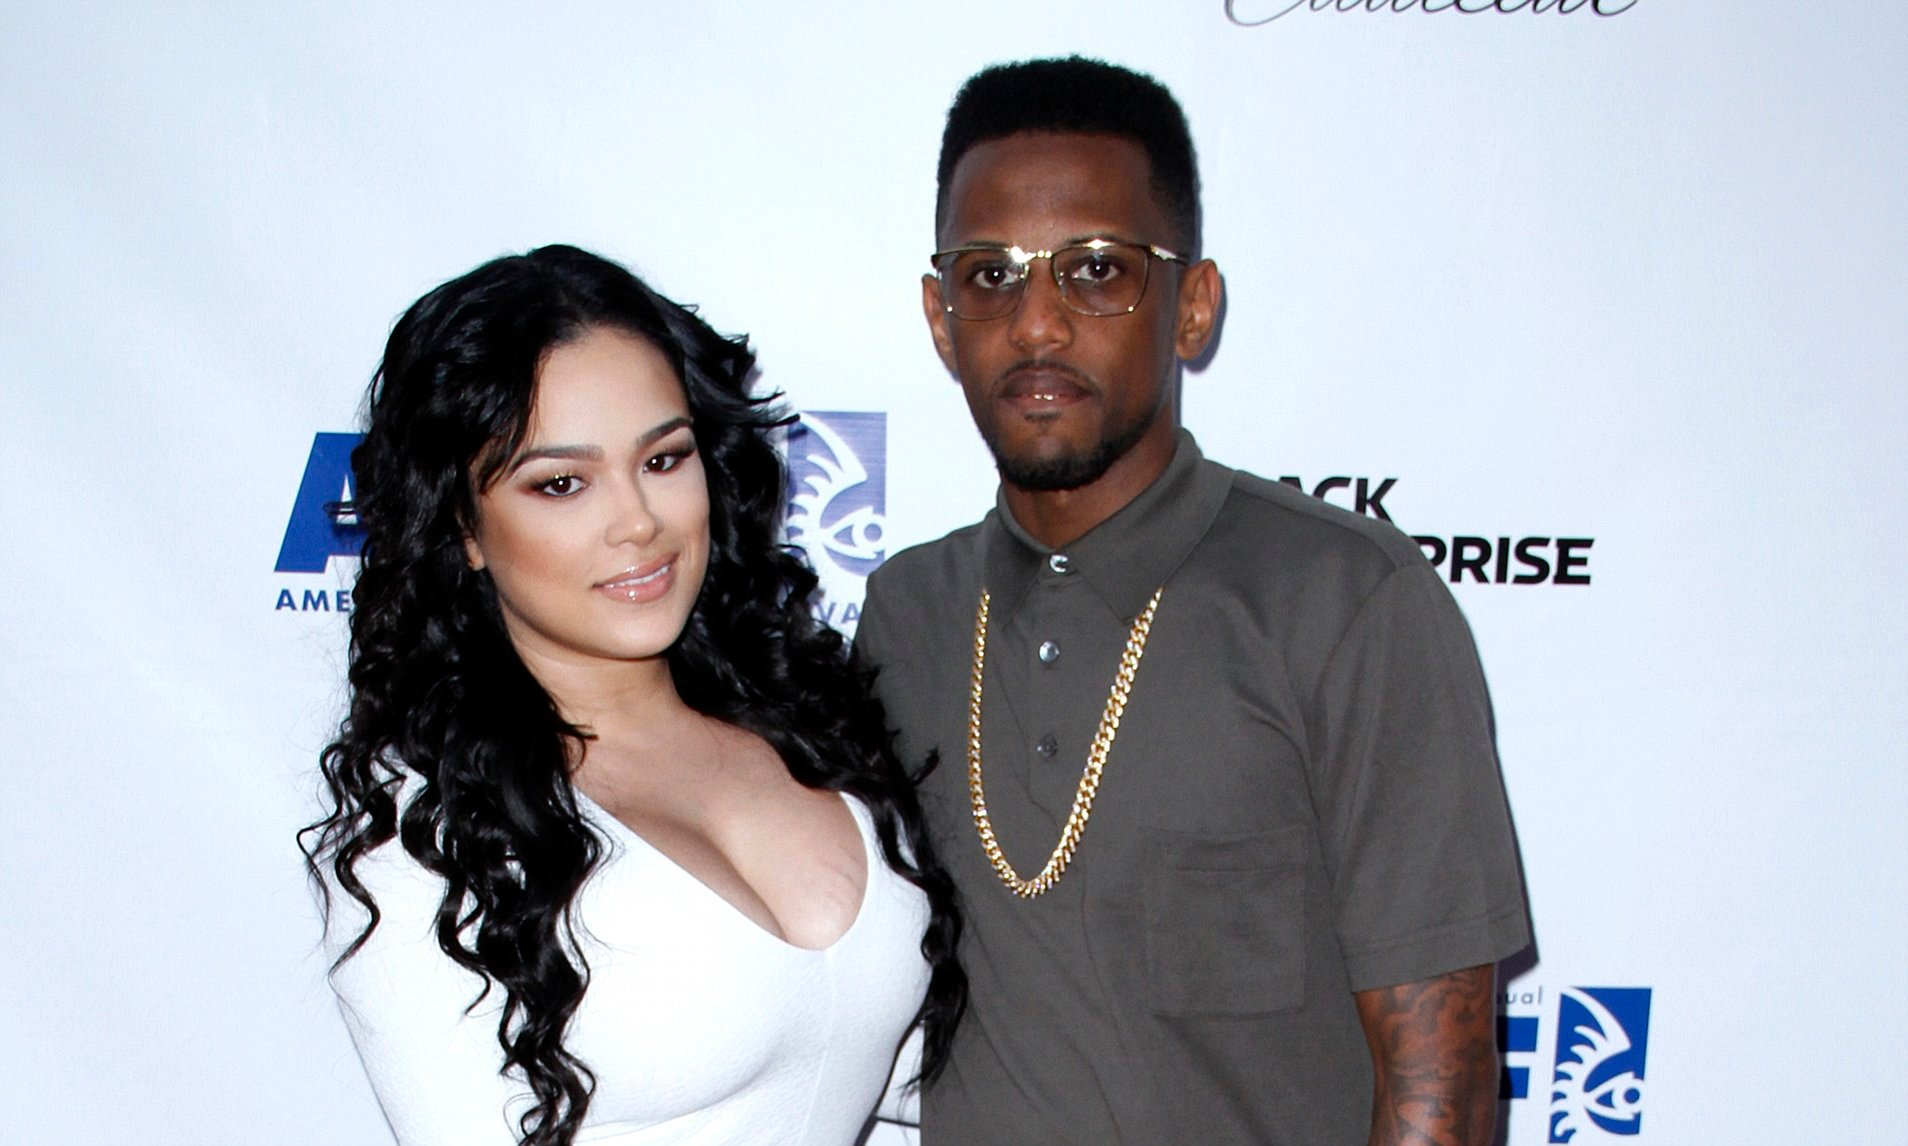 Fabolous Shares Loving Post About Relationship With Emily B By Giving Advice To The New Generation — Gets Dragged By Social Media Users